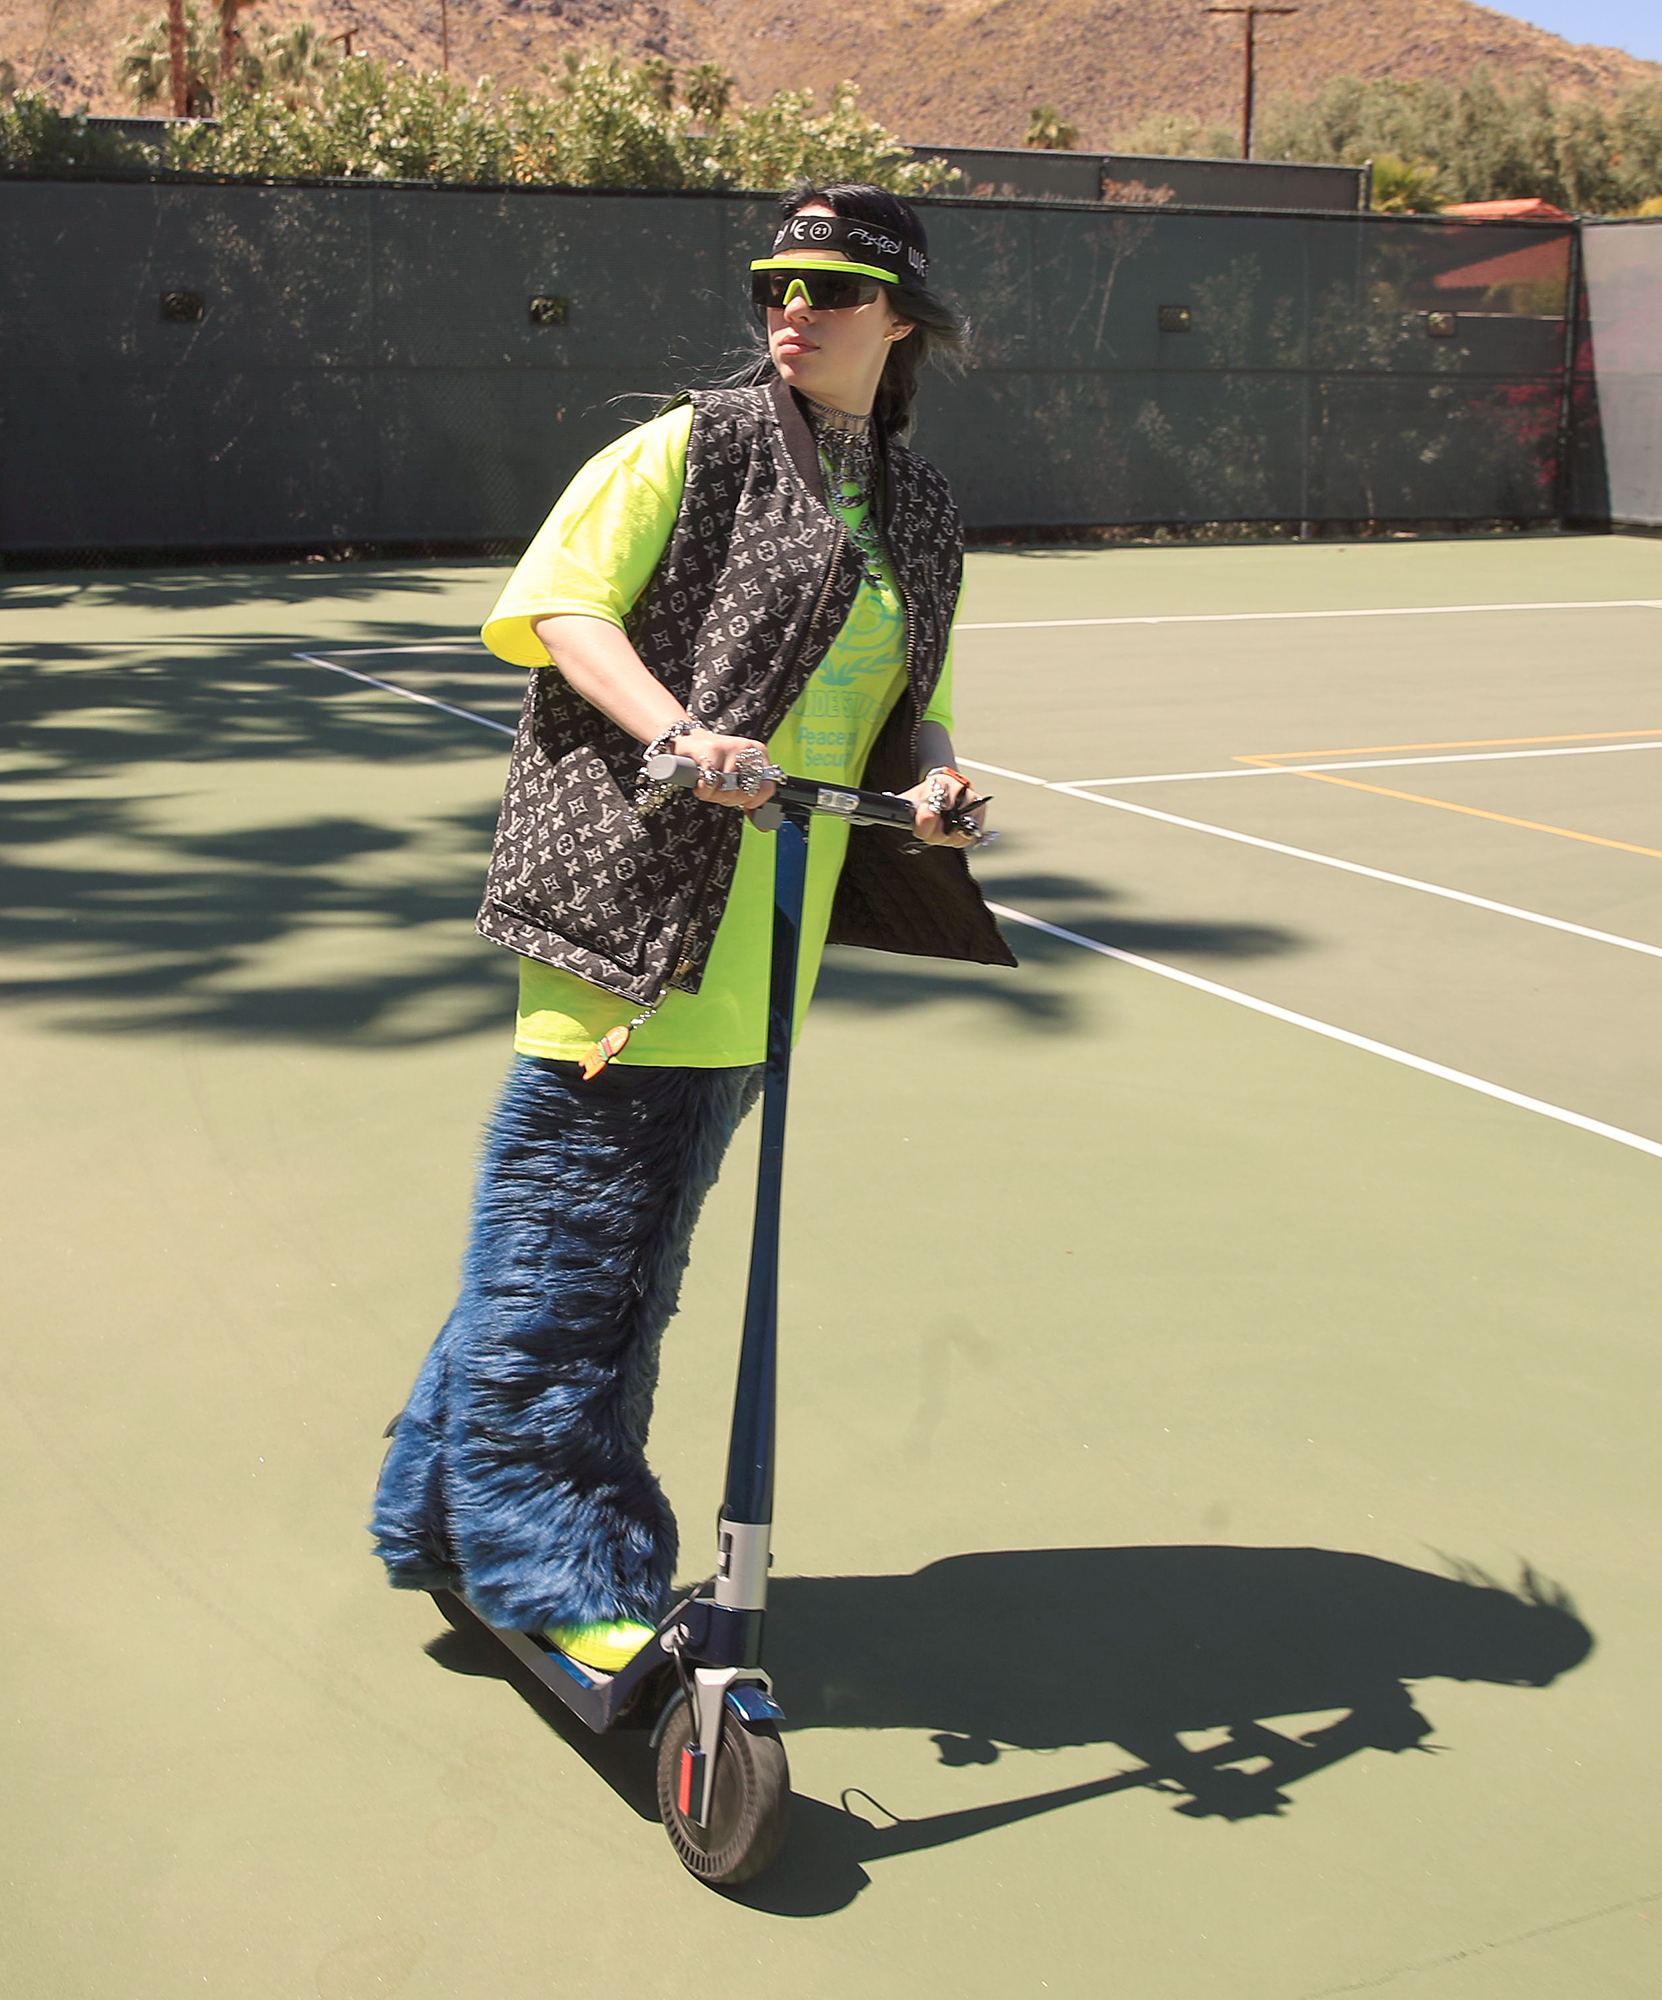 Billie Eilish rides a scooter on the tennis court at the 5th annual Interscope Coachella party.